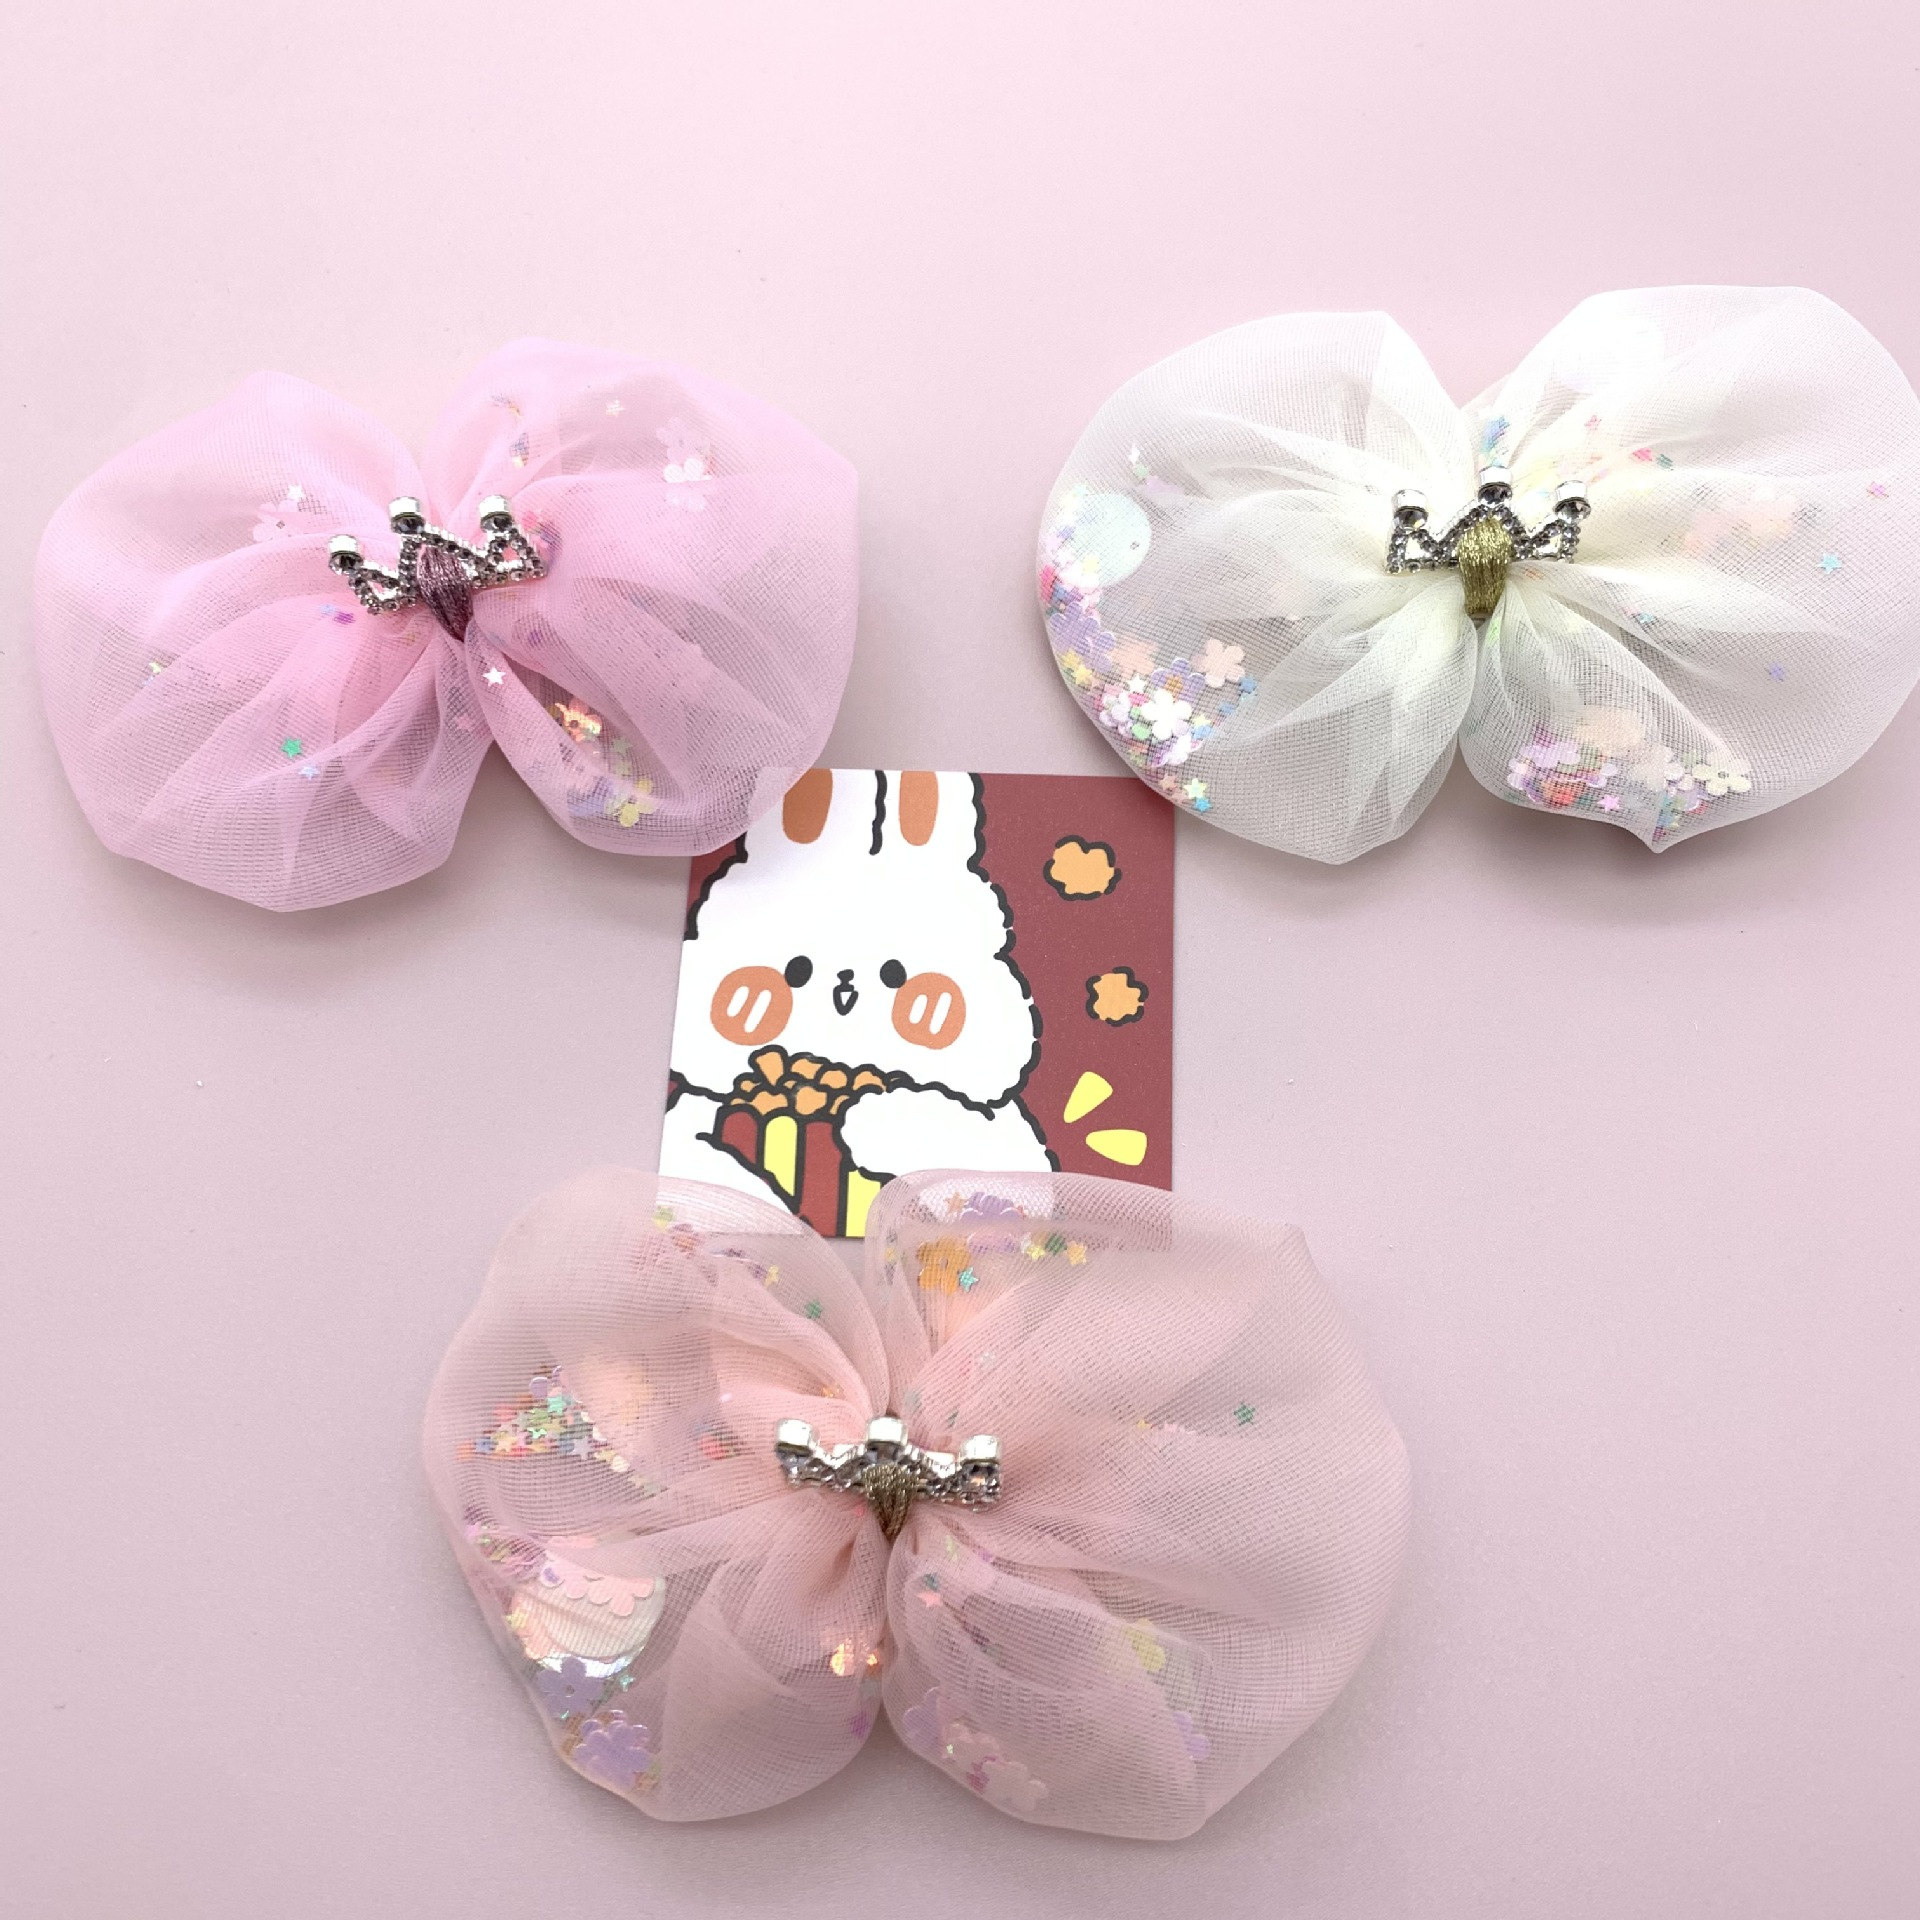 Adorned Fabric Cloth Crown Hairpin for Princess Look